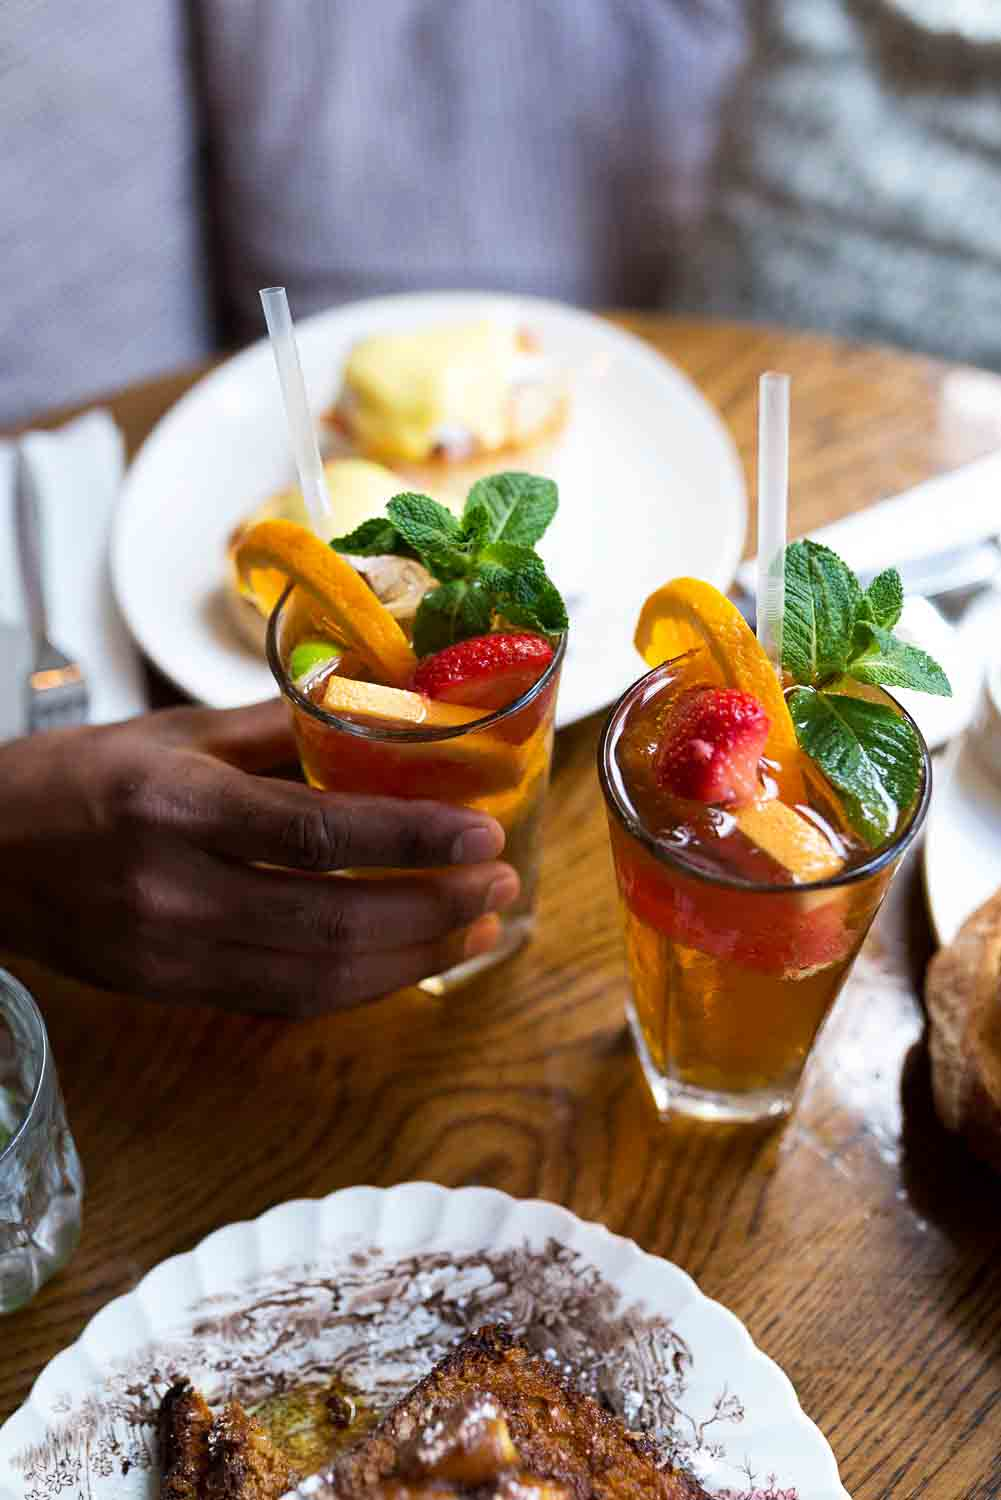 Pimm's Sunday Brunch at Eggbreak in Notting Hill